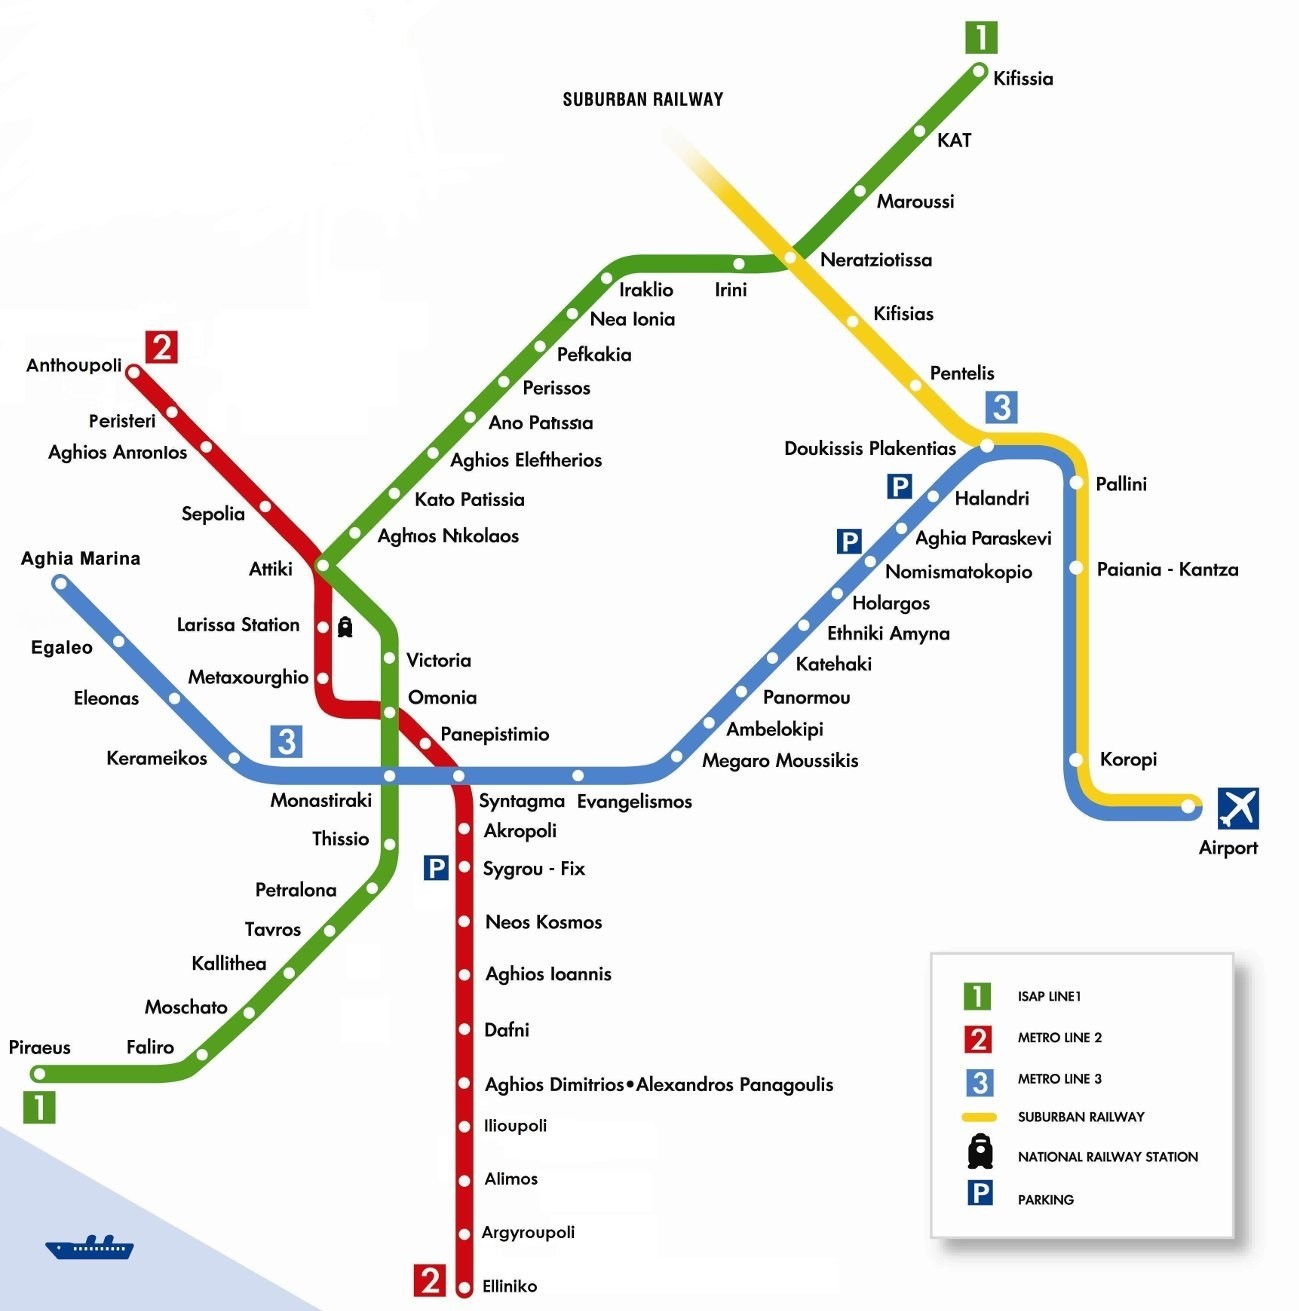 The map of the three metro lines in Athens.